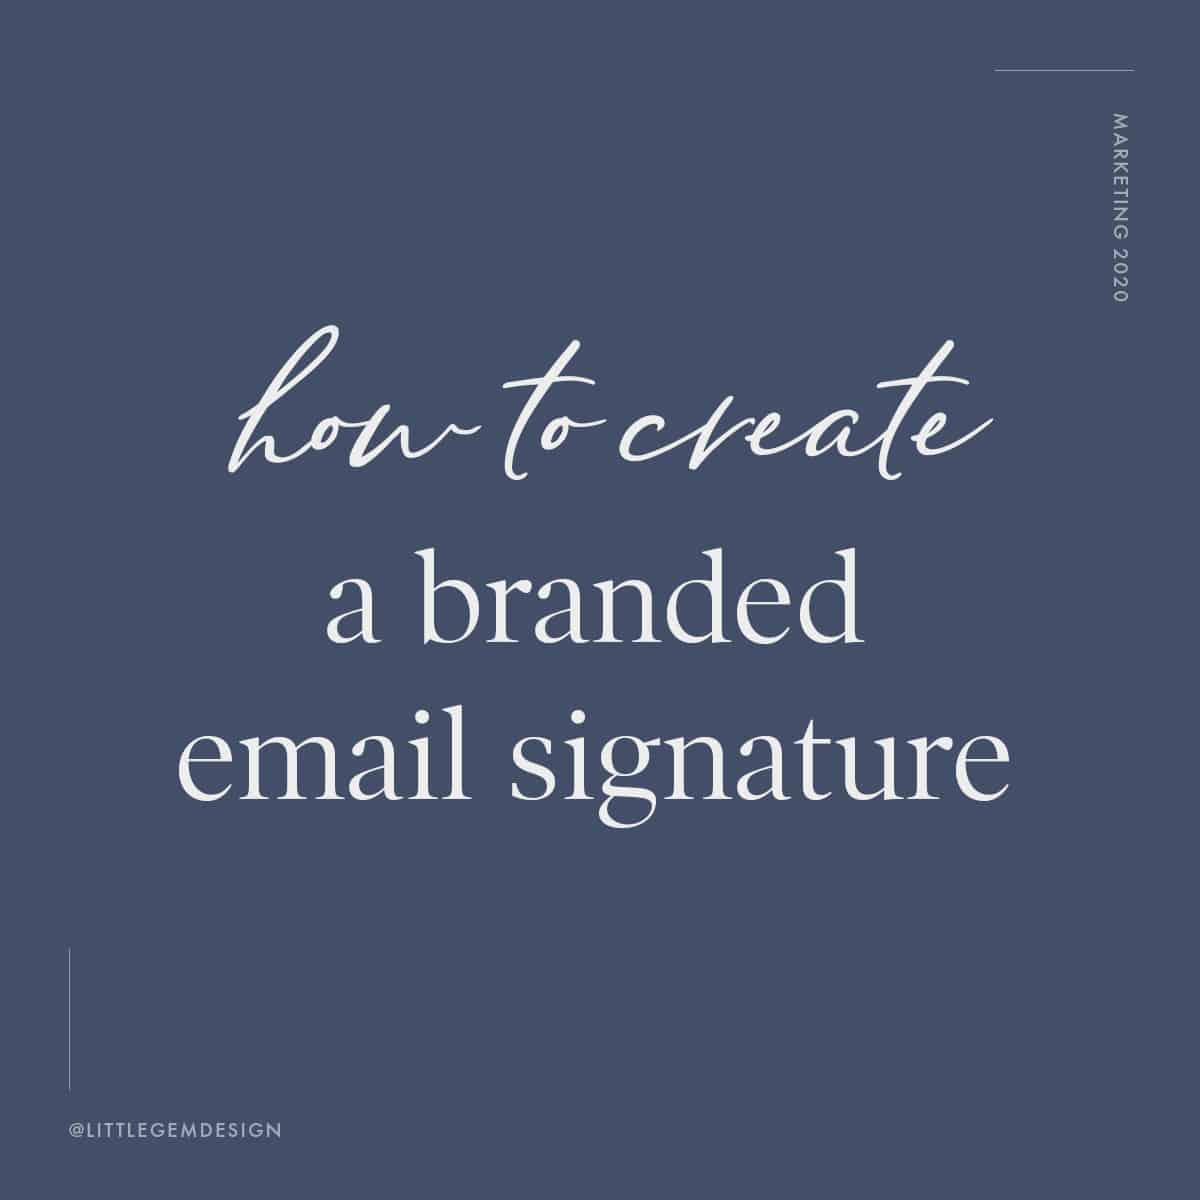 Branded email signature